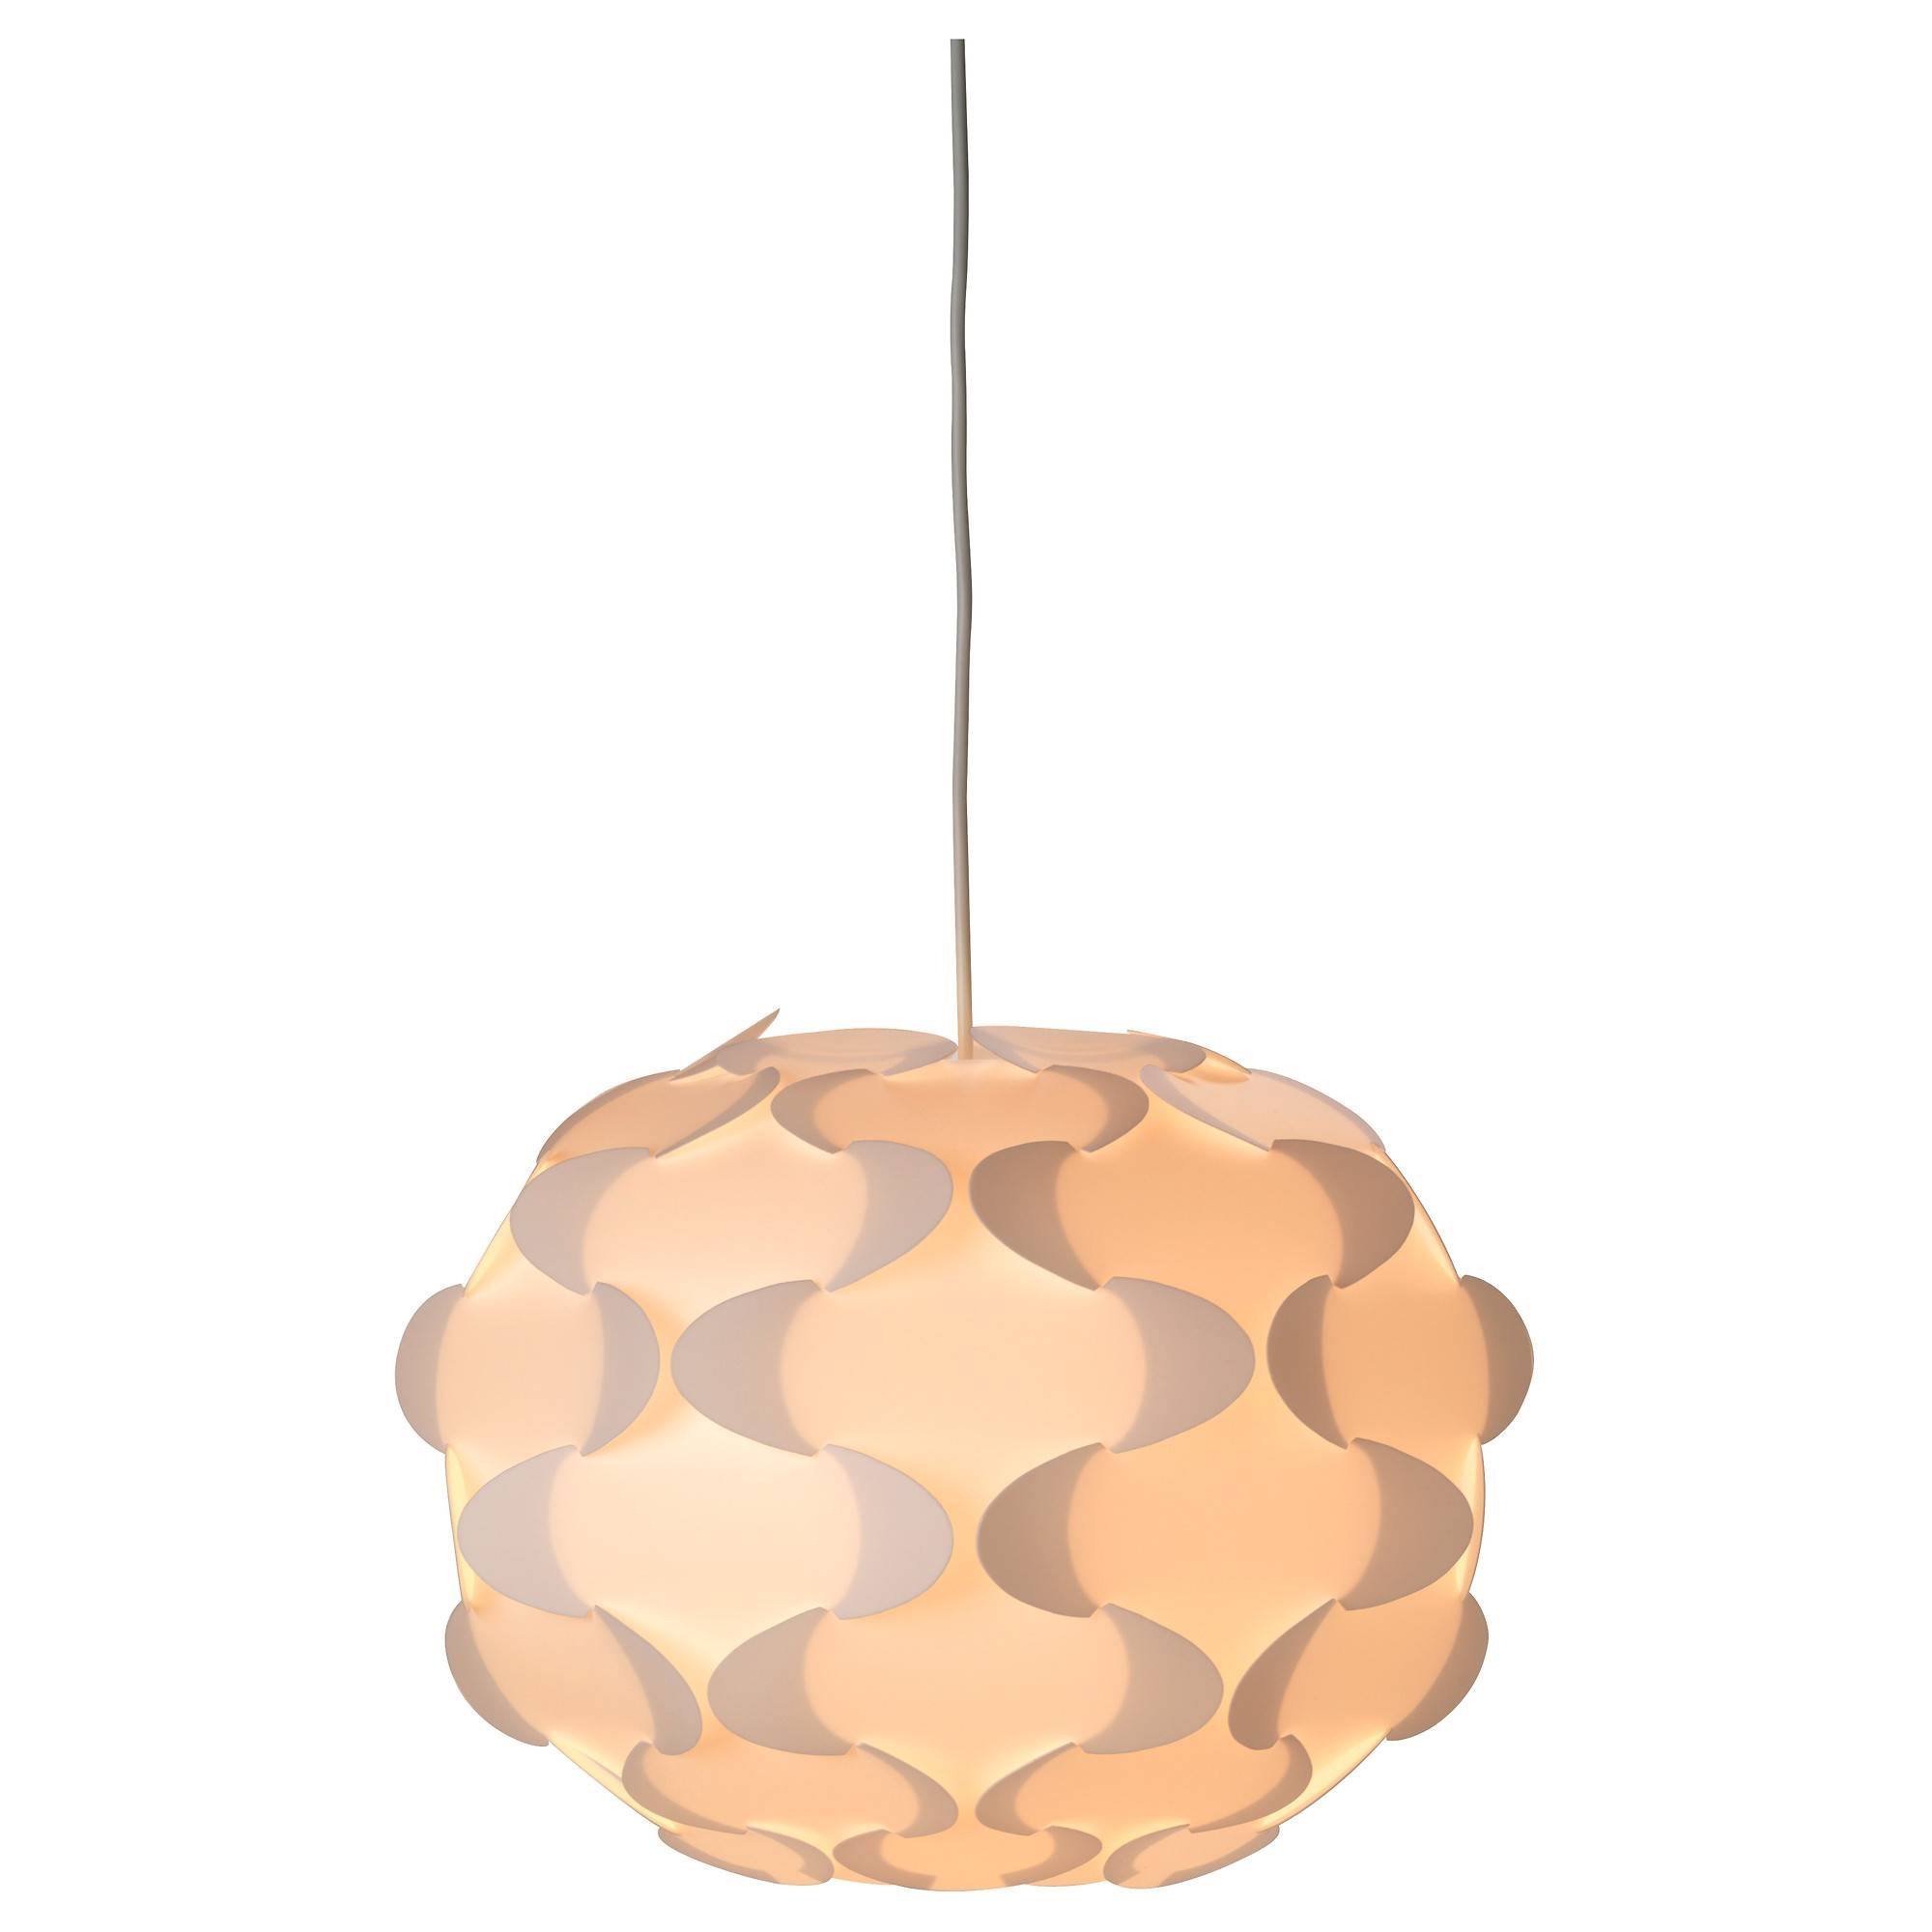 Ceiling Lights & Lamps – Ikea Intended For Ikea Globe Lights (View 1 of 15)